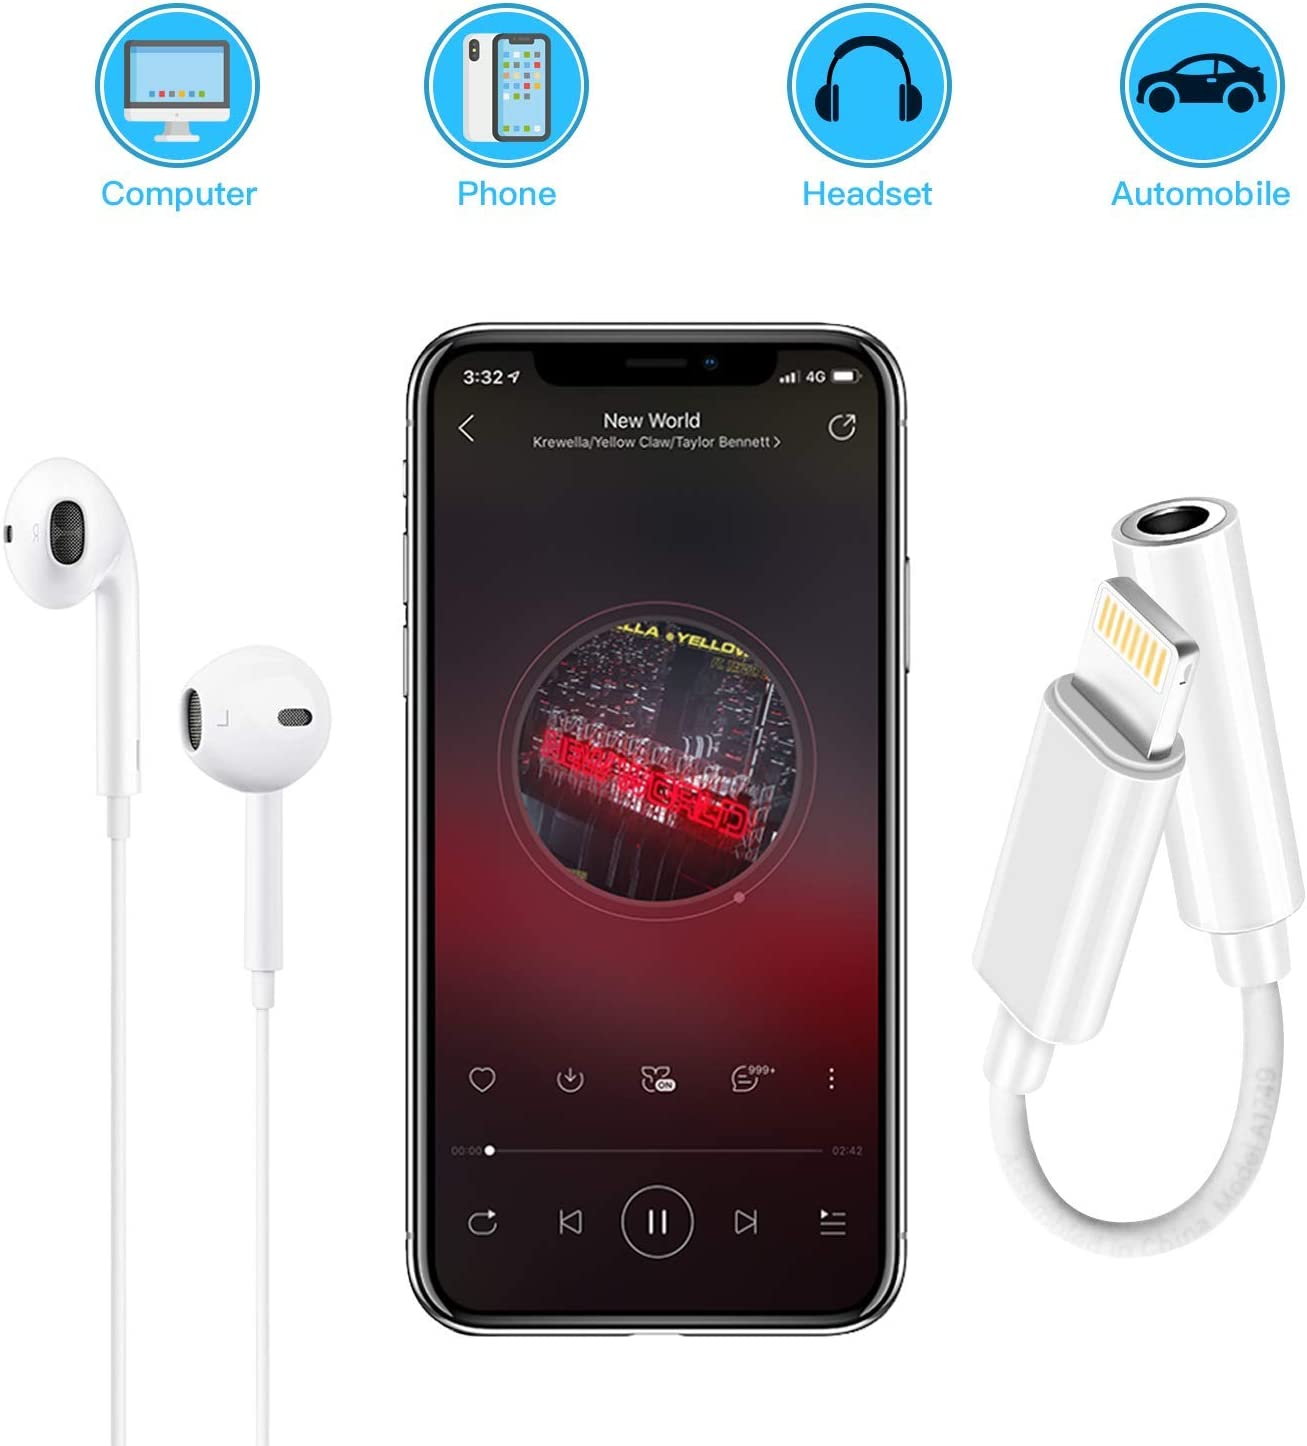 3.5mm Headphone Adapter Earbuds Earphones Adapter 3Pack,Dongle for iPhone X//Xs//Xs Max//XR 7//8//8Plus iOS 10//11//12 Plug and Play Female Connector Audio Cable Earbuds Aux Converter White